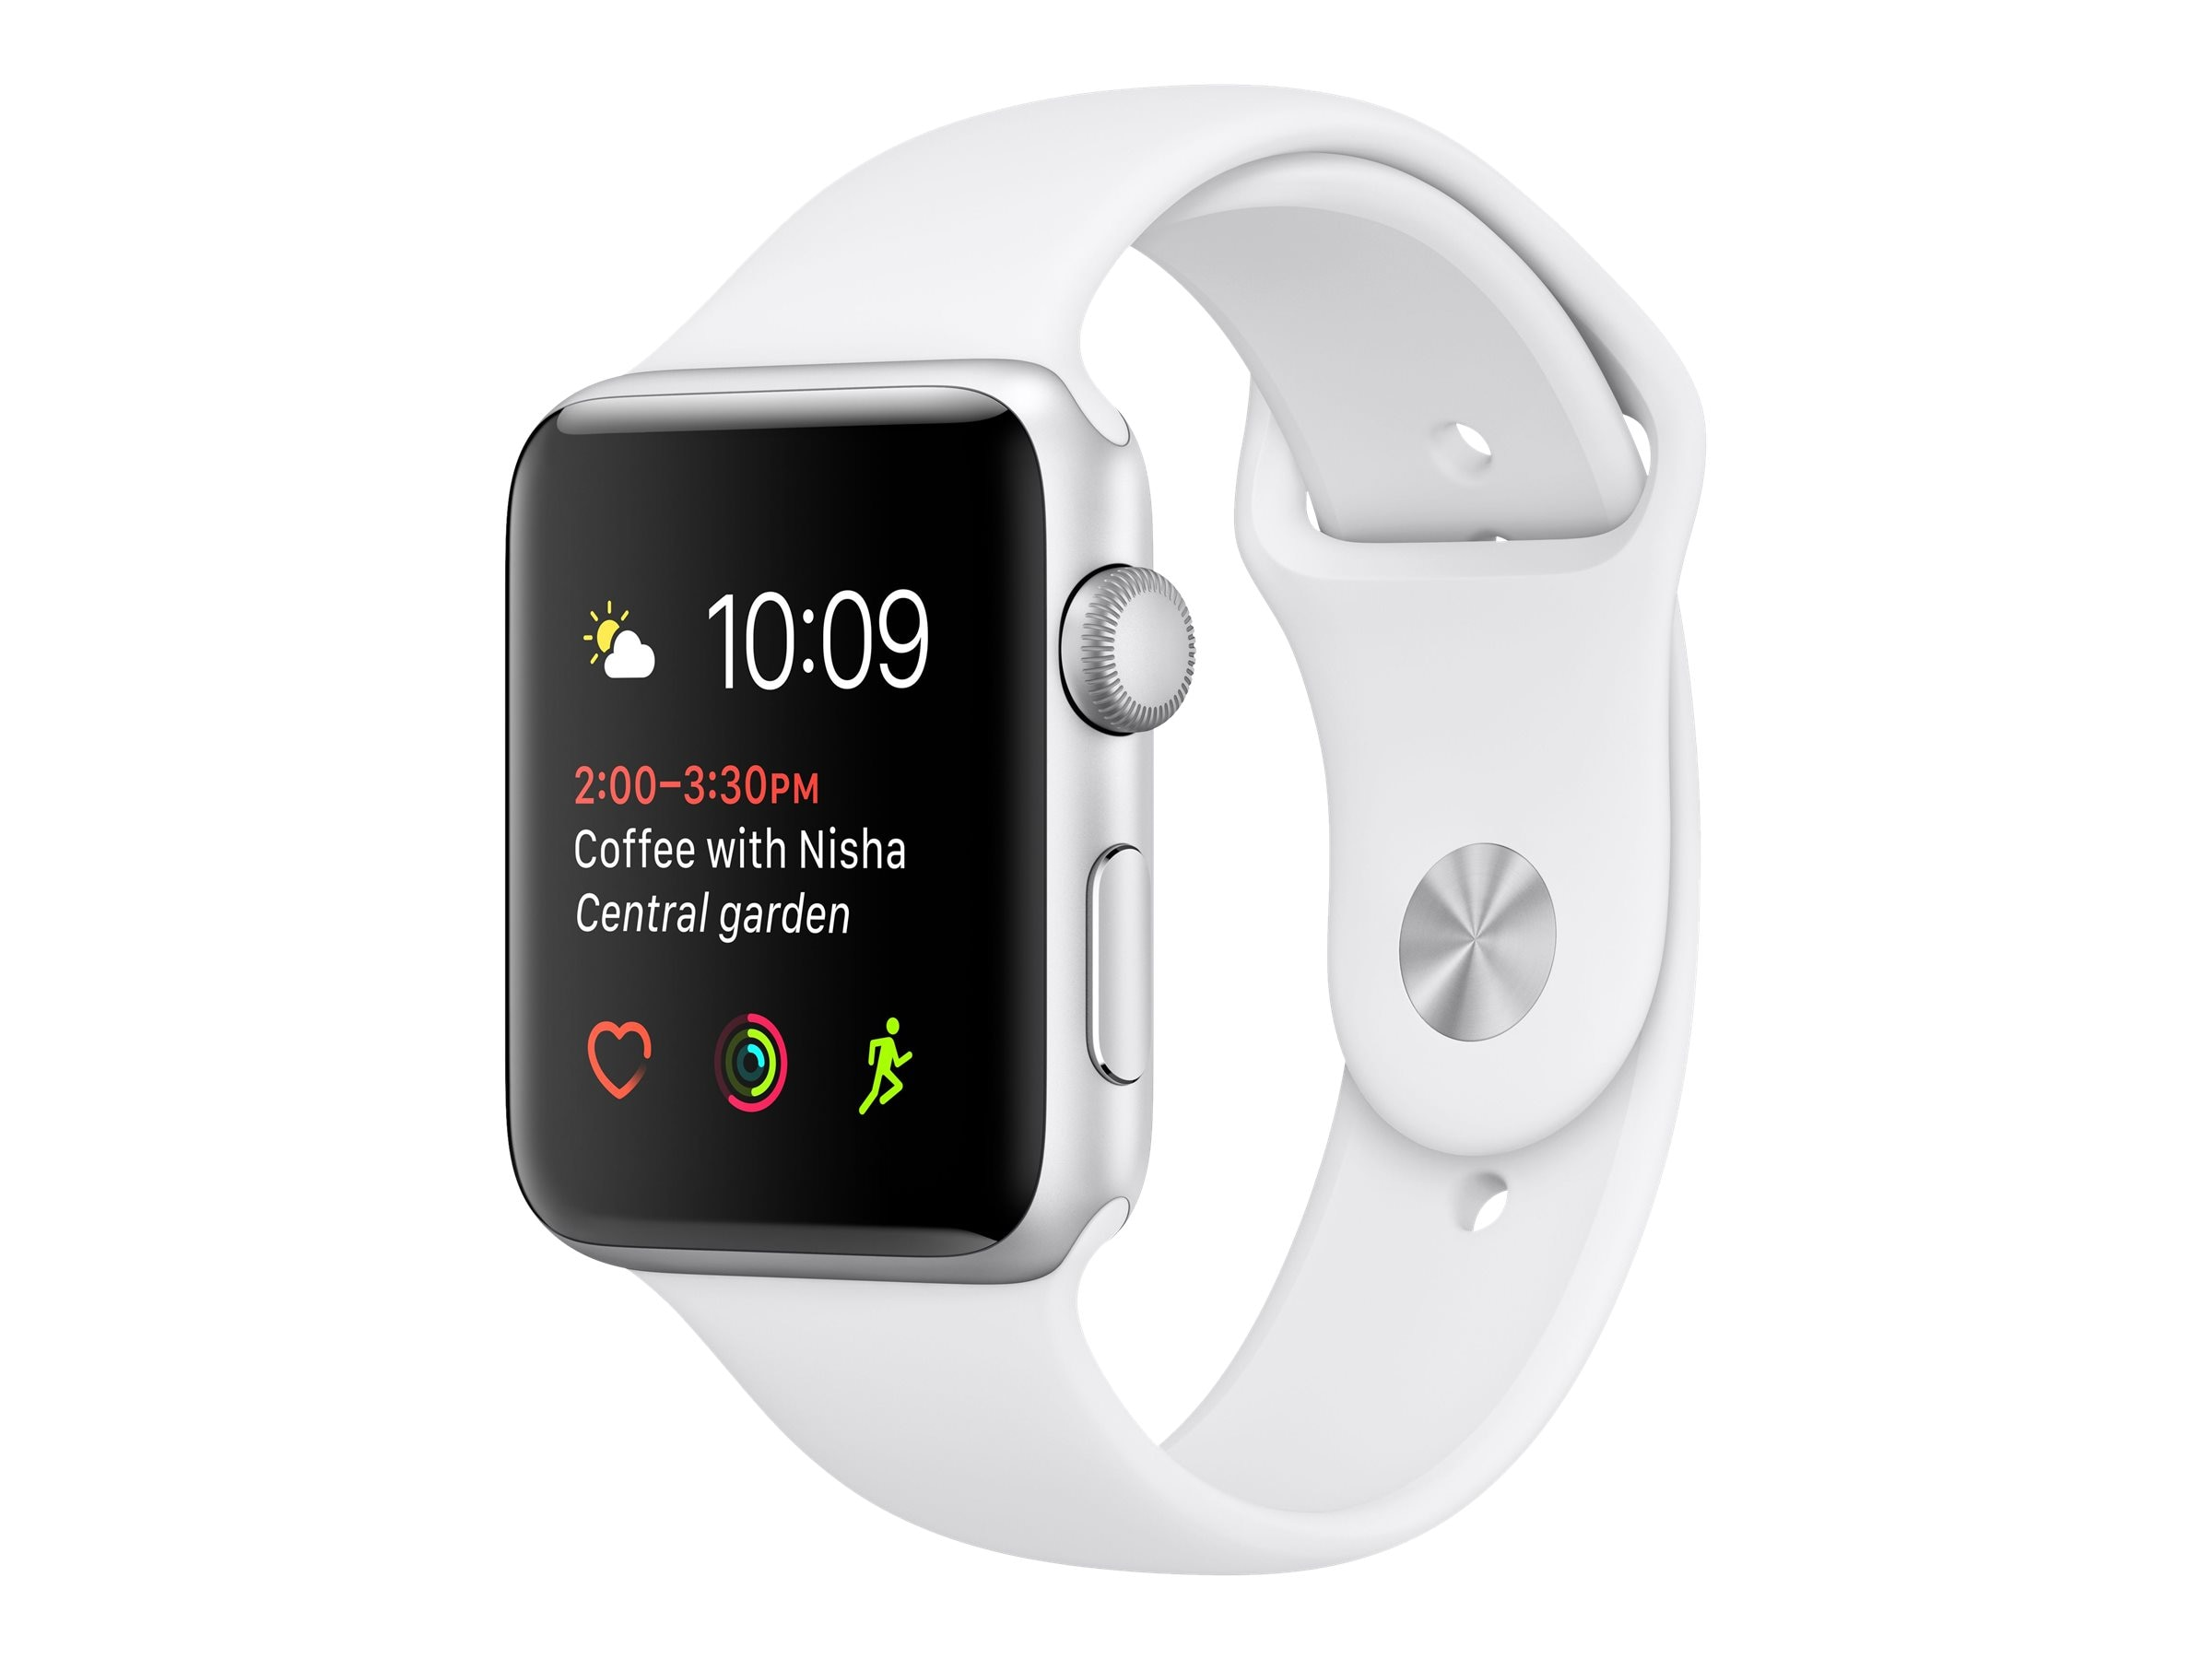 Apple Watch Series 1, 38mm, Silver Aluminum Case with White Sport Band, MNNG2LL/A, 32658595, Wearable Technology - Apple